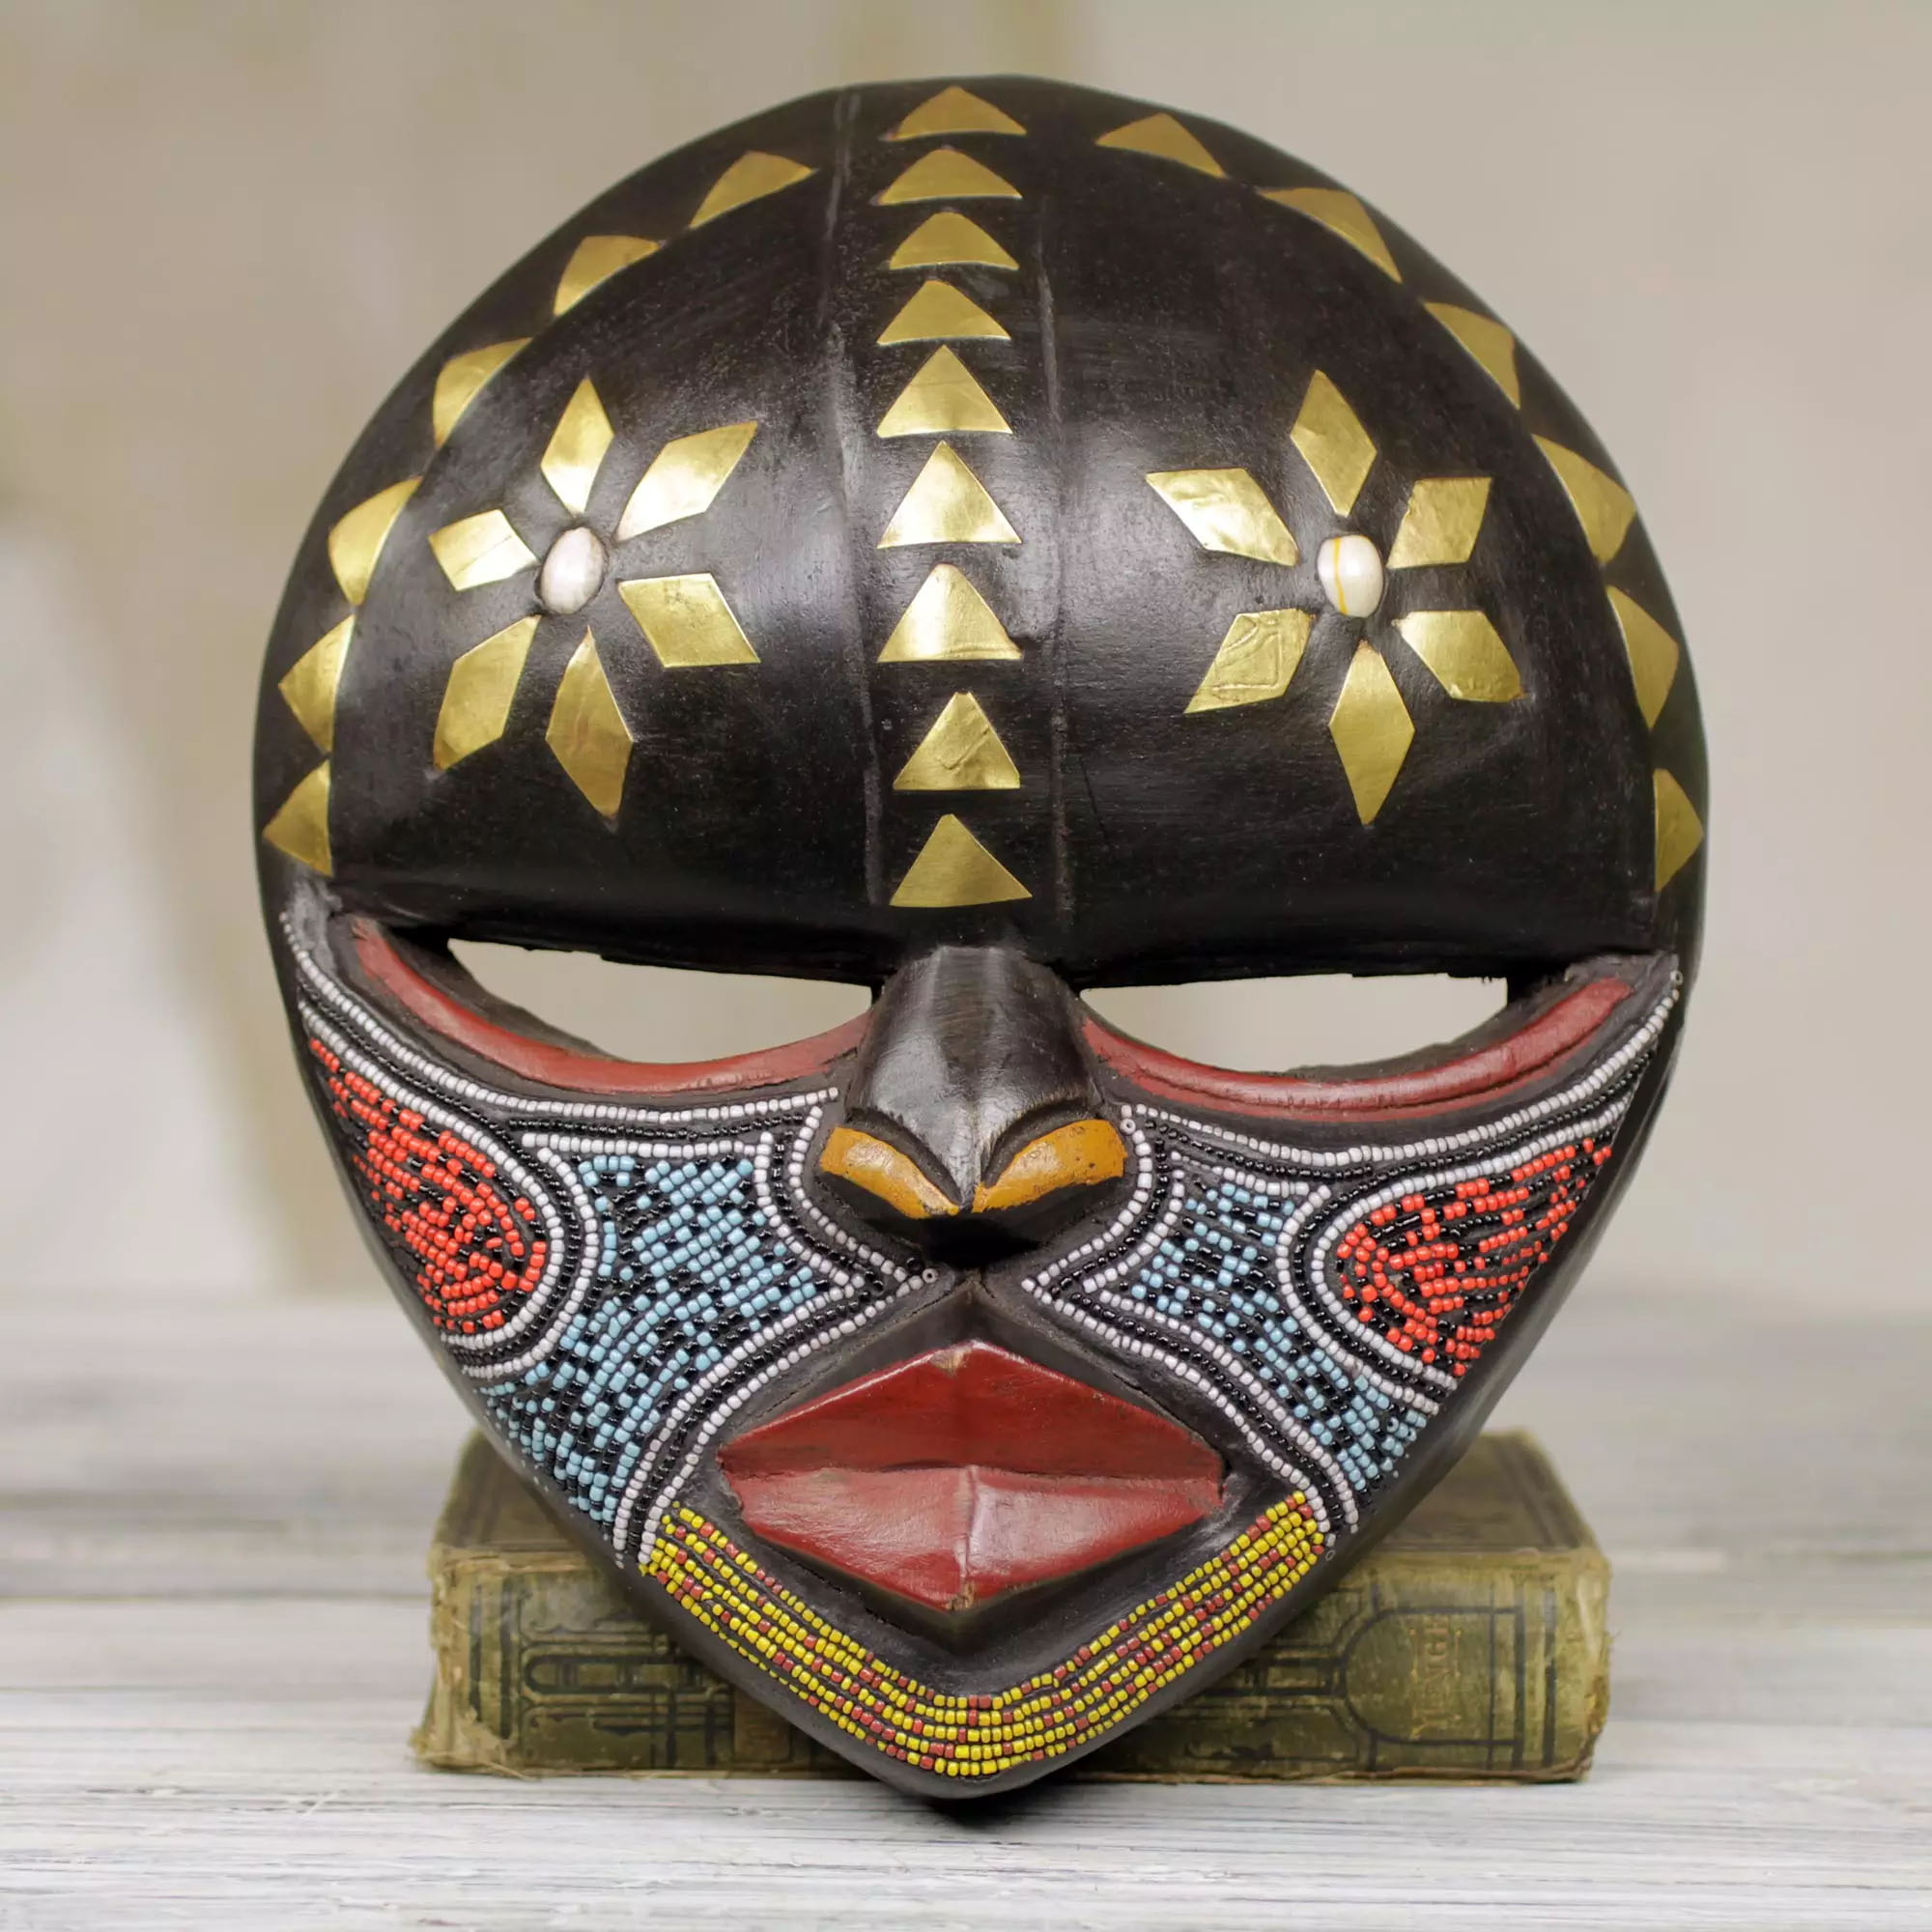 Barowa Mask Hand Crafted African Wood Mask Wall Art multi-colored recycled glass beads Decorating with Masks brass plated